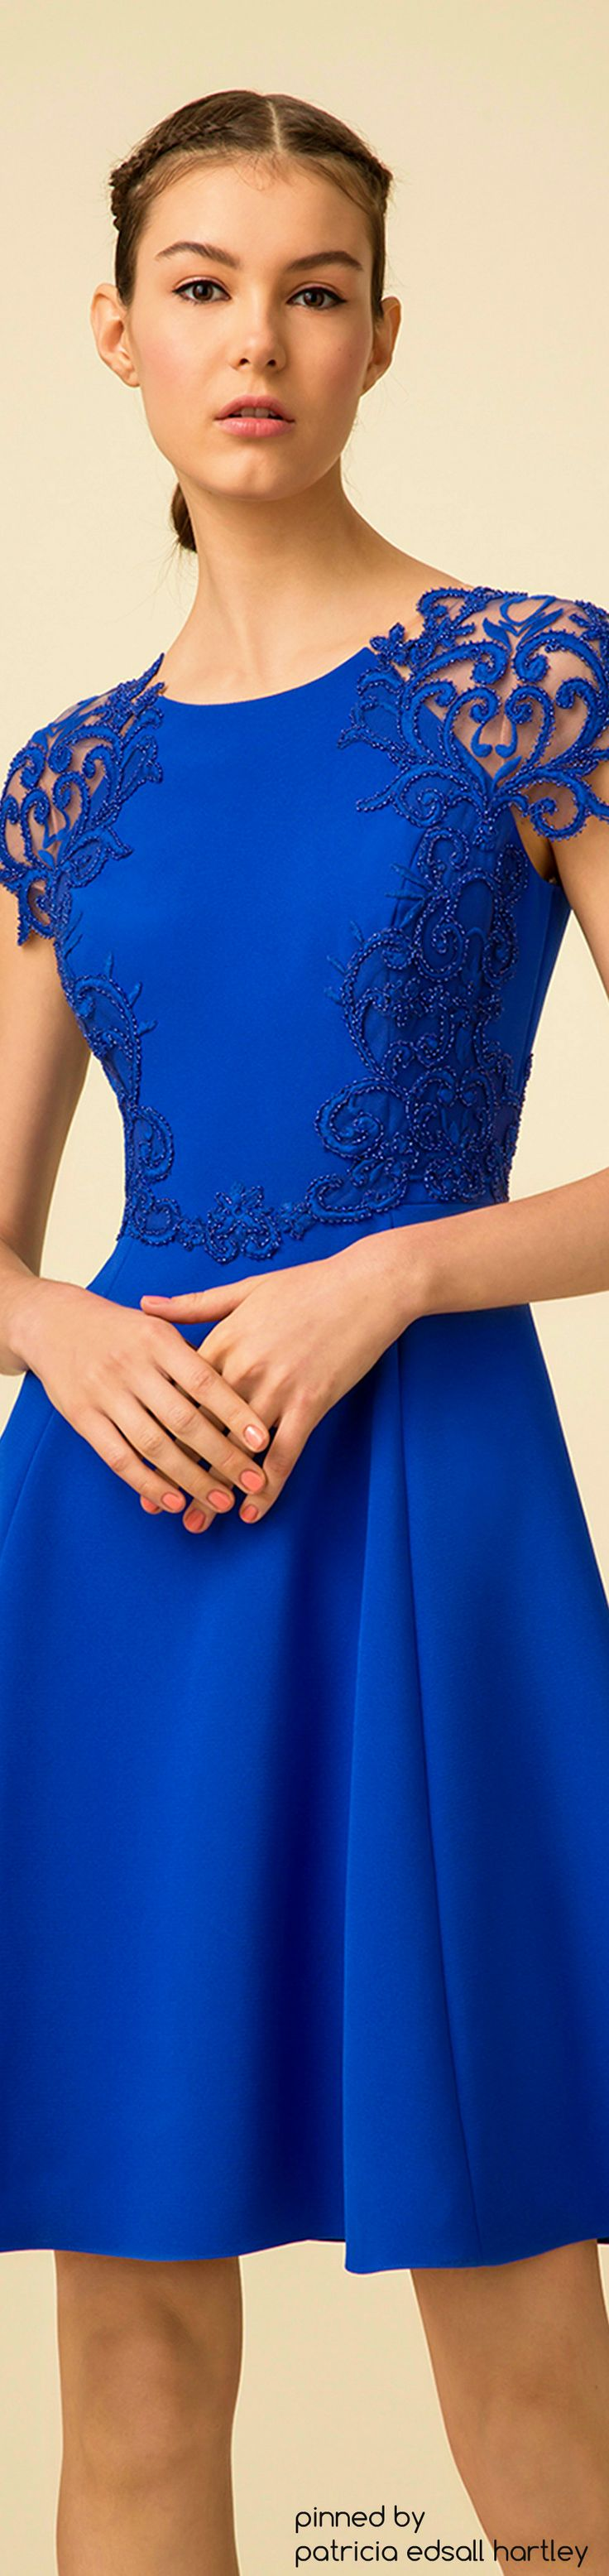 SPRING 2016 READY-TO-WEAR Marchesa Notte blue lace dress women fashion outfit clothing style apparel @roressclothes closet ideas